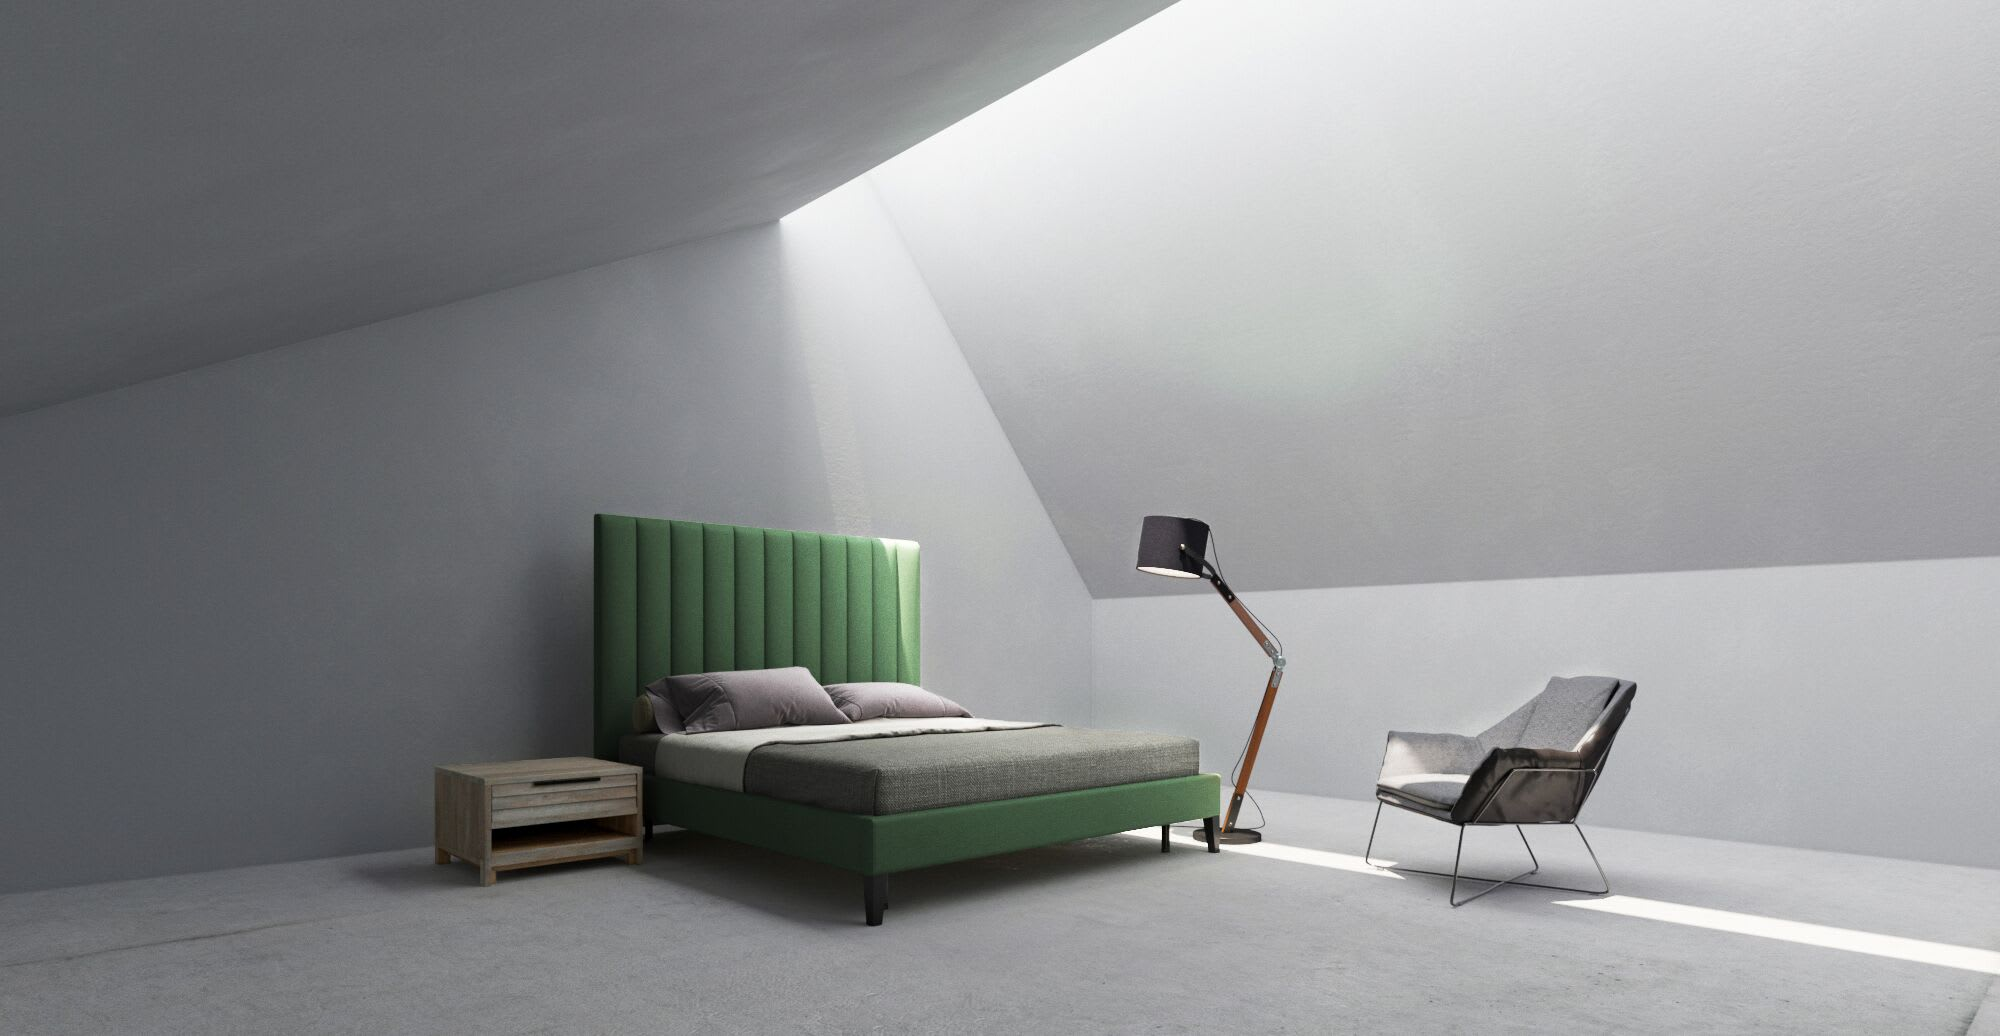 A green bed in a designed space